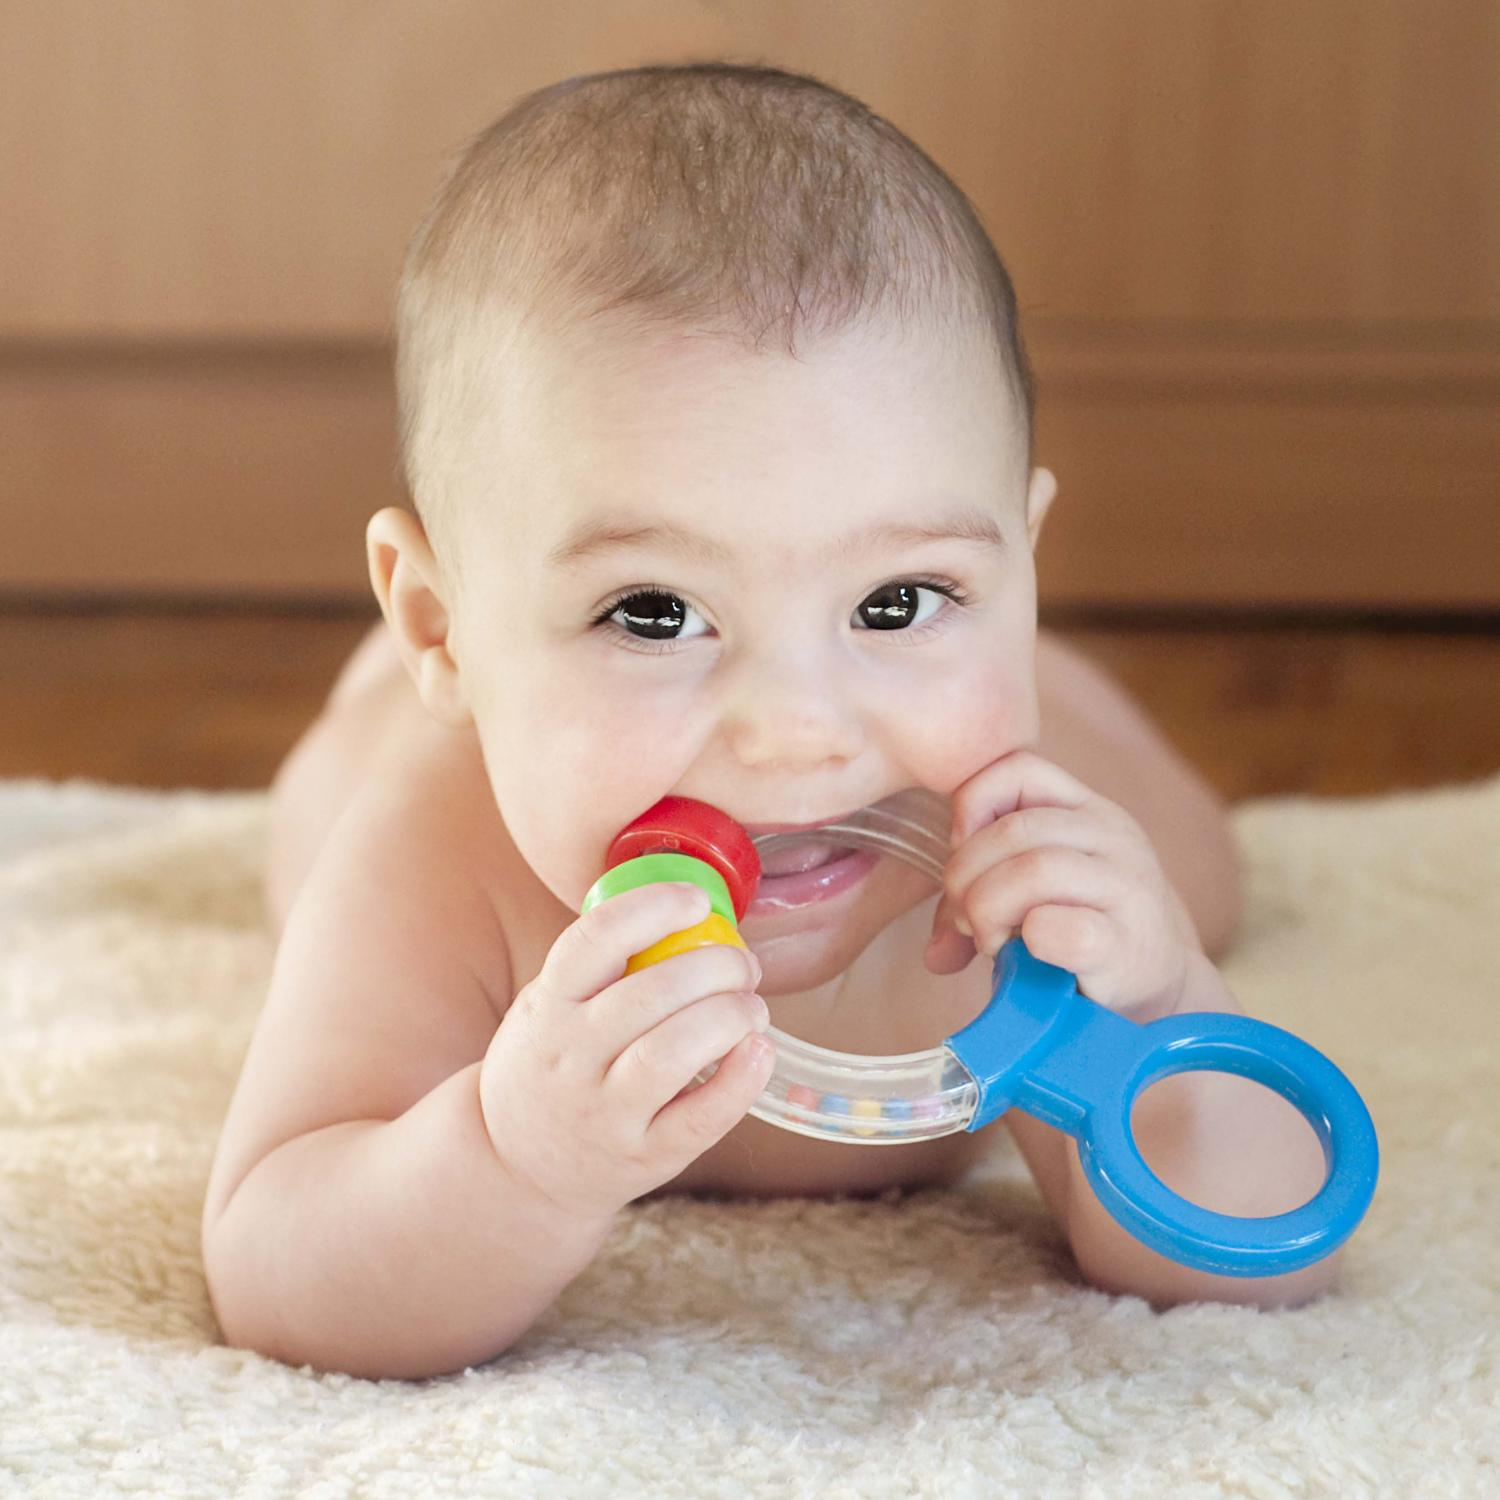 Bebe De 4 Meses Guide To Teething Symptoms And Remedies Parenting